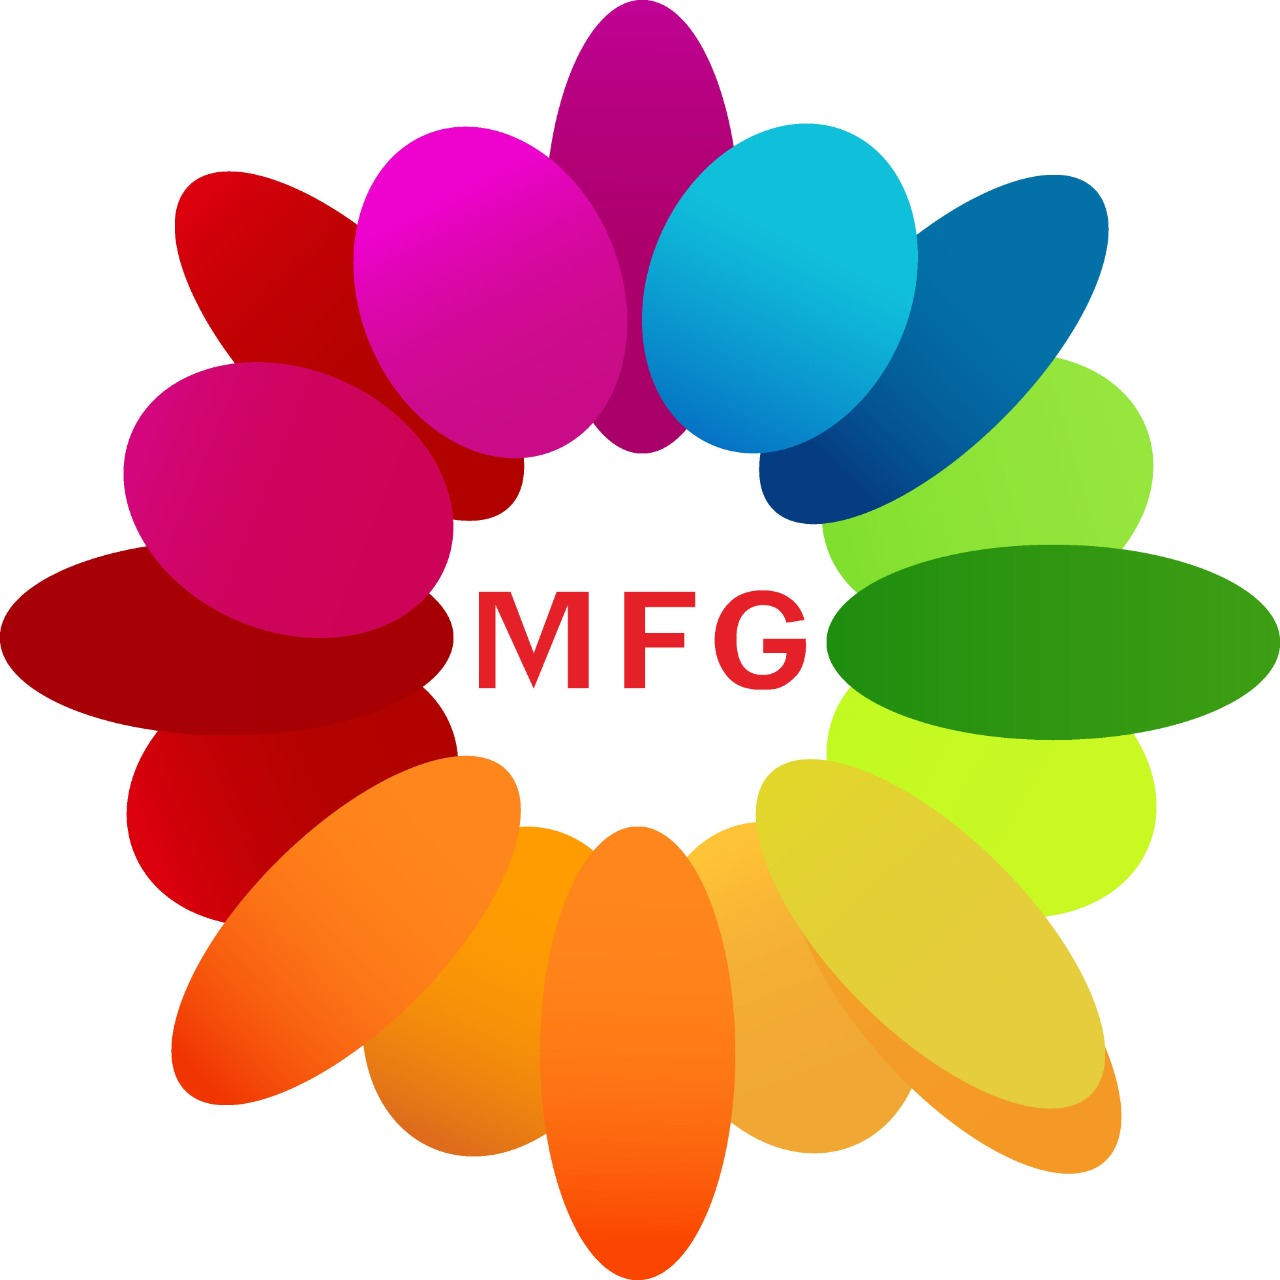 Beautiful Bunch of 20 red and yellow carnations with 1 Kg chocovanilla cake with 5 blown balloons